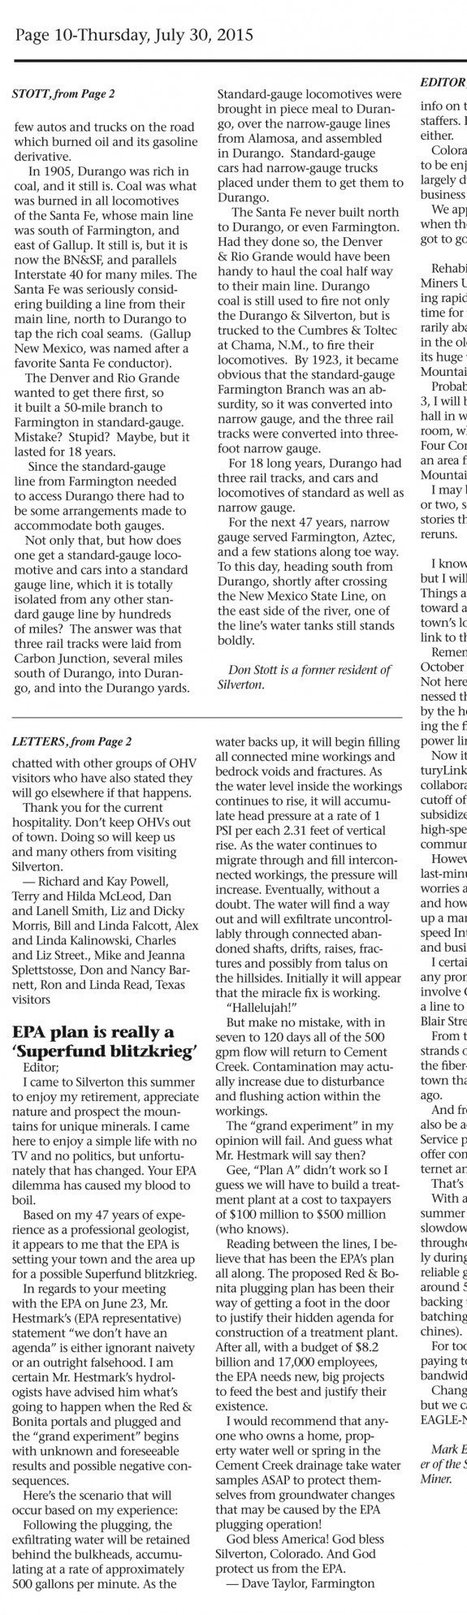 Retired Geologist Predicted EPA Spill Week Prior, Says It Was Intentional for Money   BoogieFinger Politics   Scoop.it